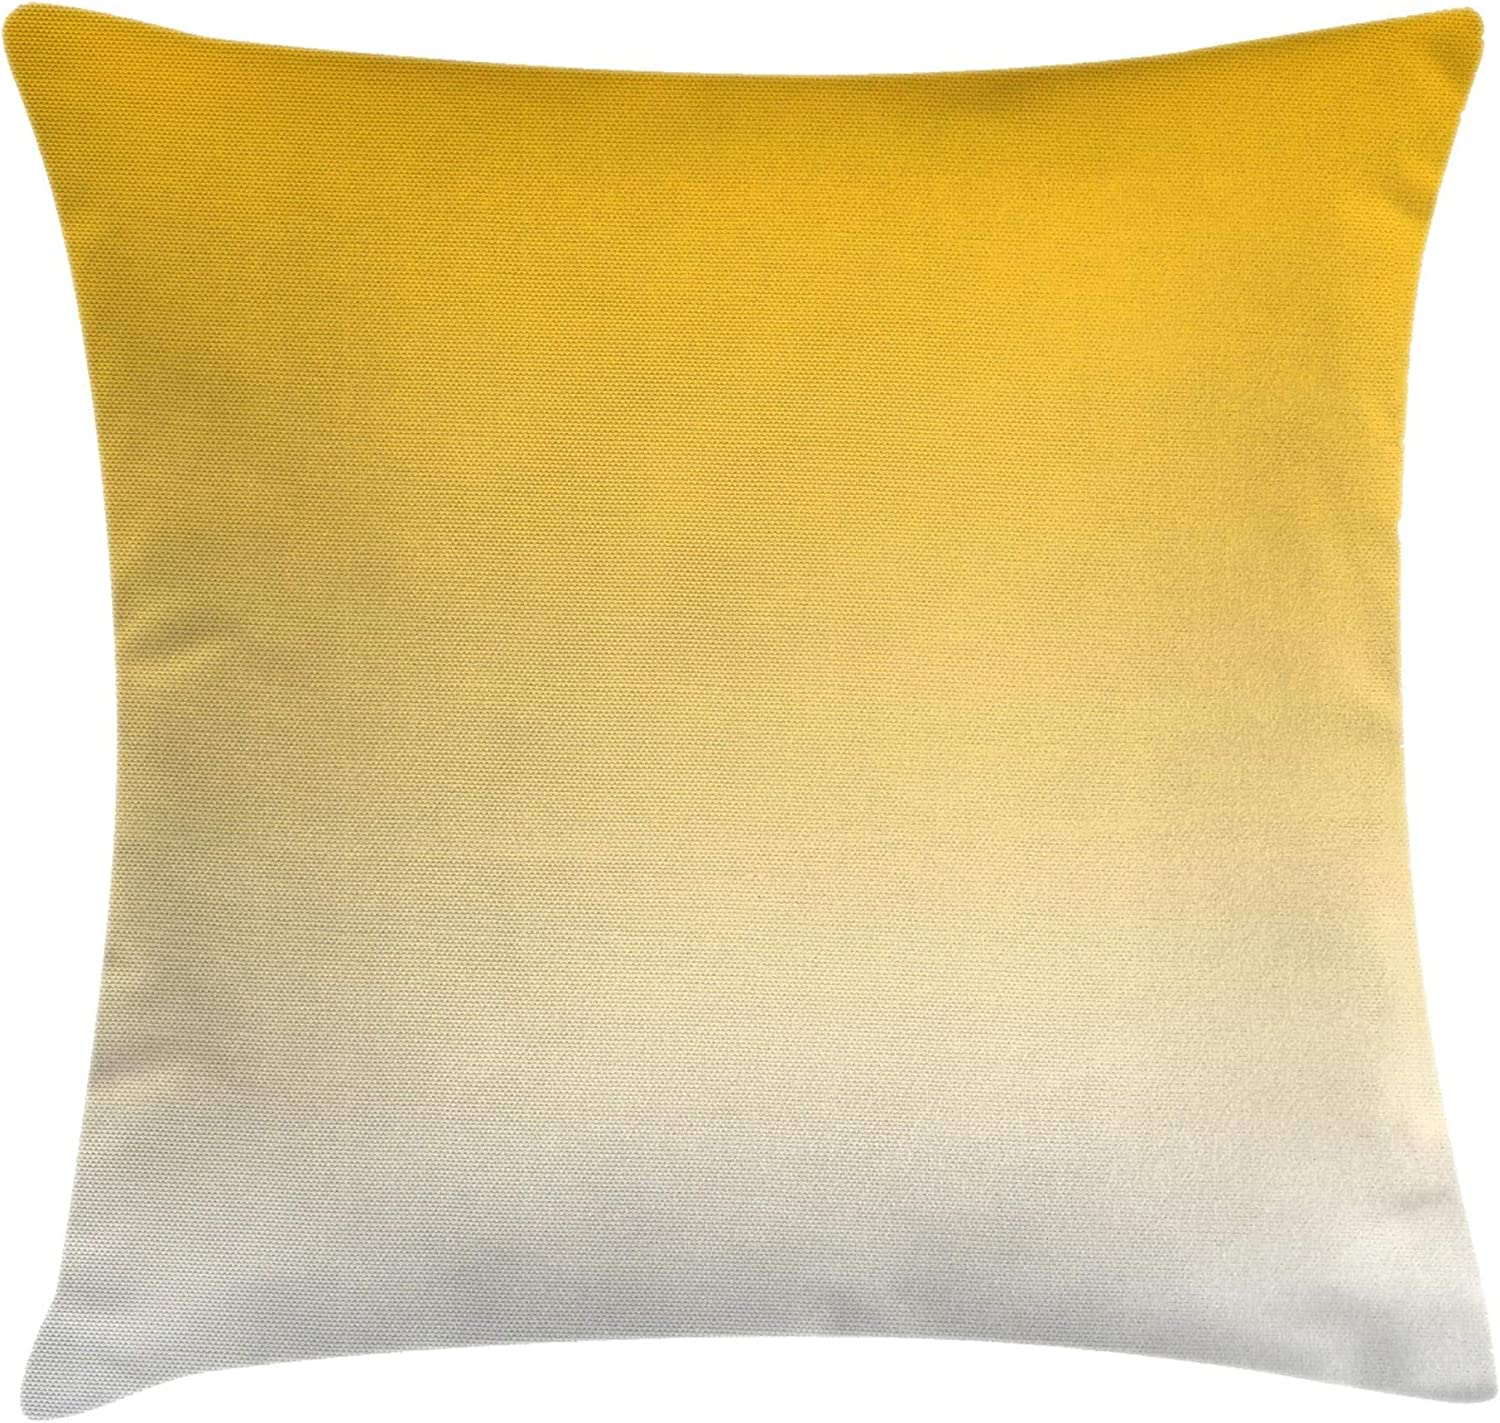 """Ambesonne Ombre Throw Pillow Cushion Cover, Summer Love on The Beach Theme Inspired for Yellow Lovers Modern Ombre Art Design, Decorative Square Accent Pillow Case, 18"""" X 18"""", Yellow"""